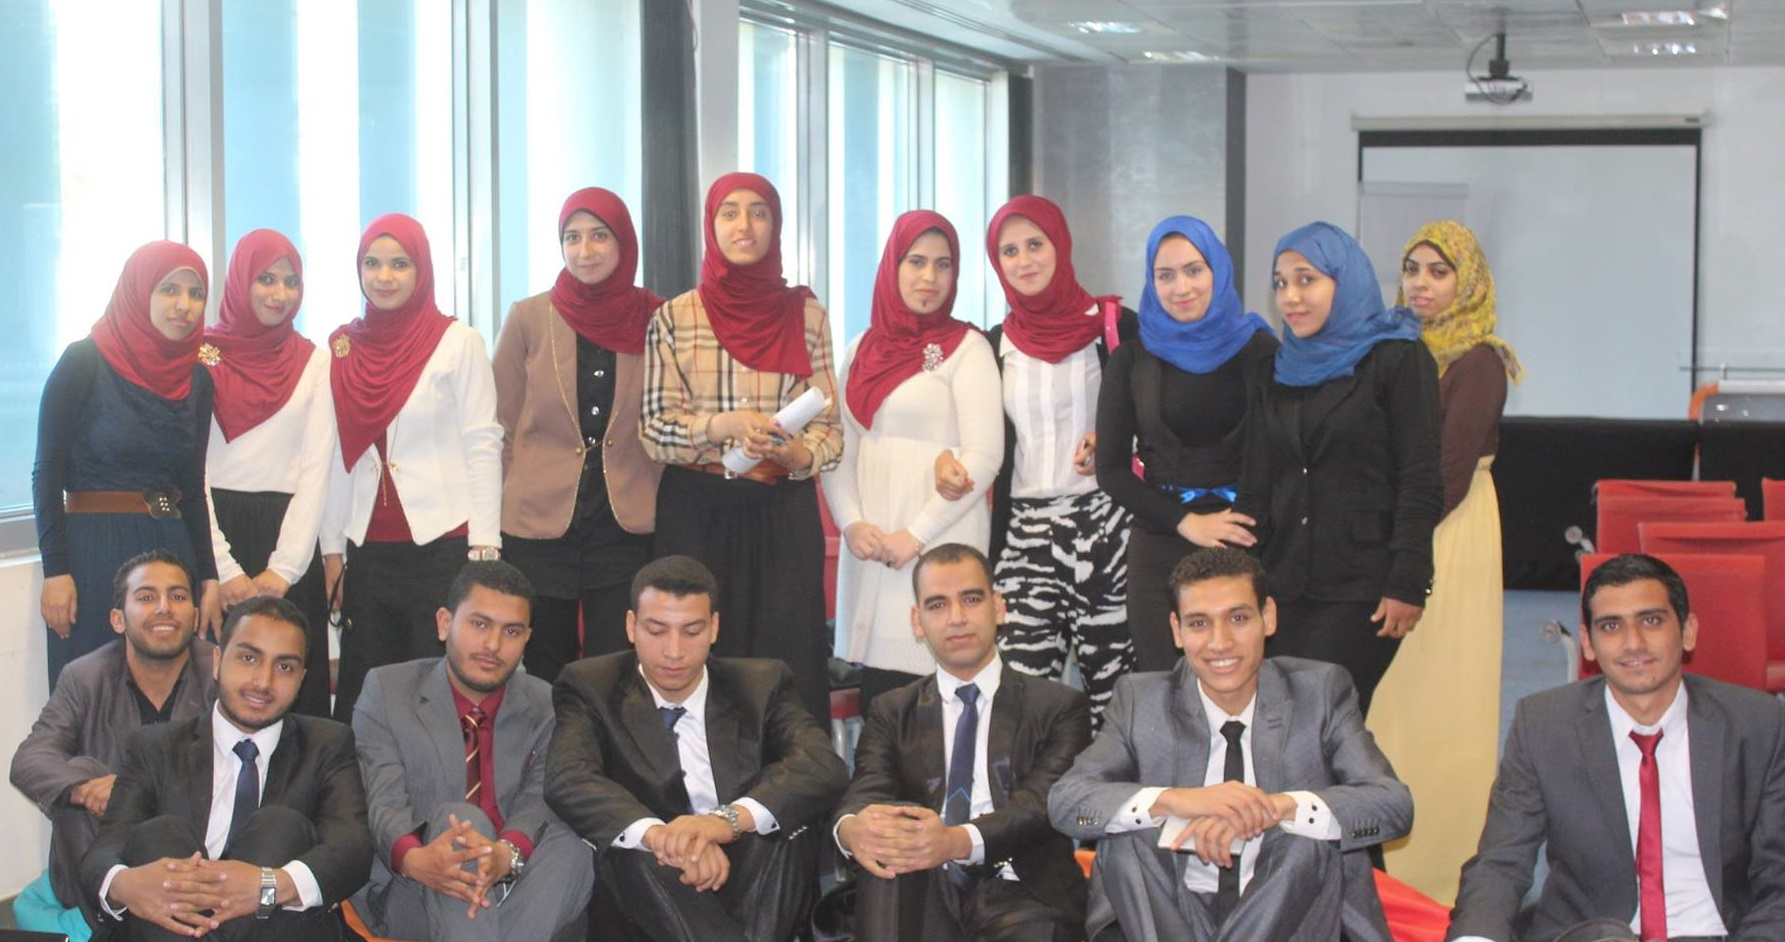 IEEE Faculty of Engineering, University of Zagazig Association harvested first and second places in the business community leadership contest